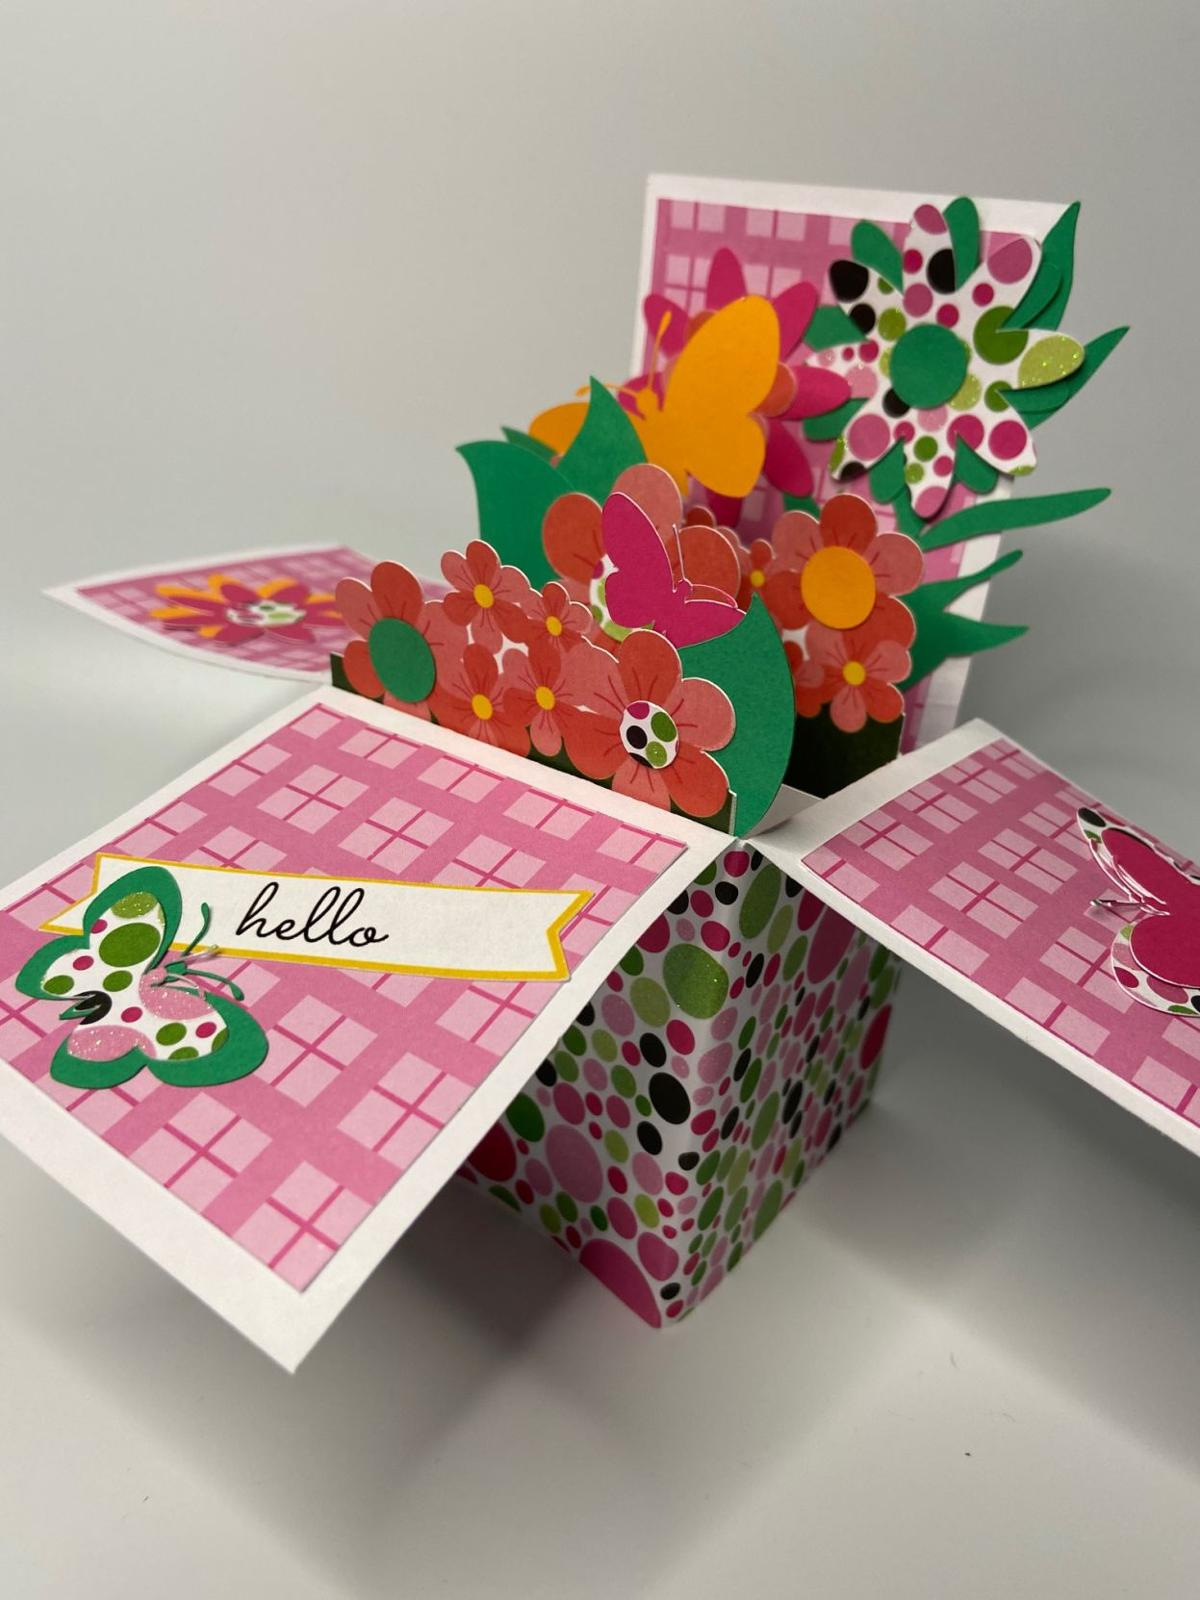 Library's latest Grab & Go craft is a pop-up box card